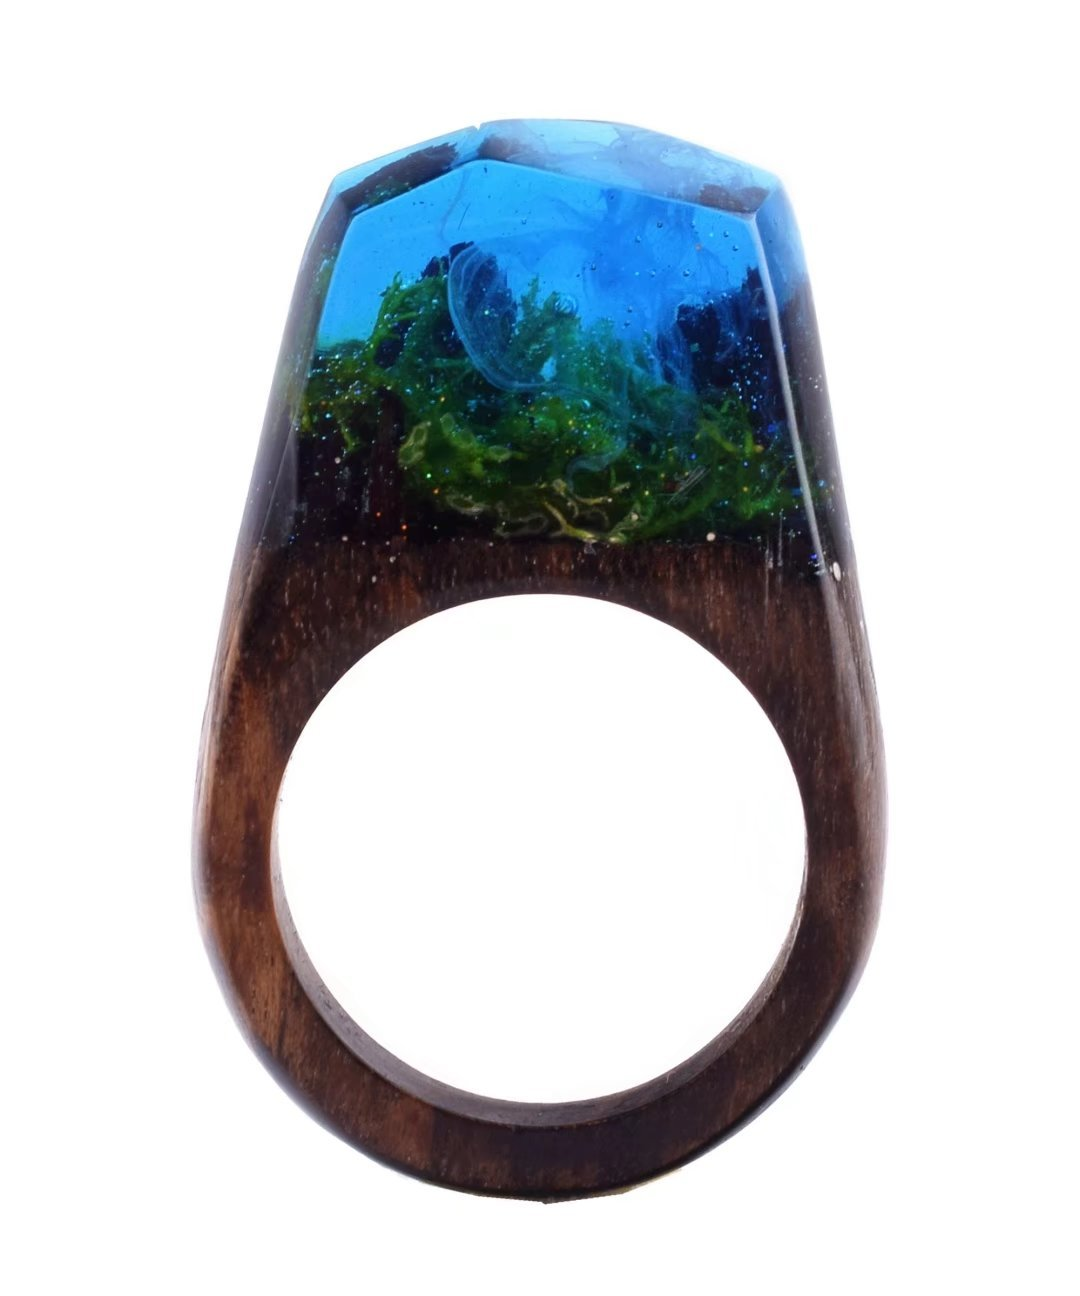 Heyou Love Handmade Wood Resin Ring With Secret Forest Scenery Landscape Inside Jewelry